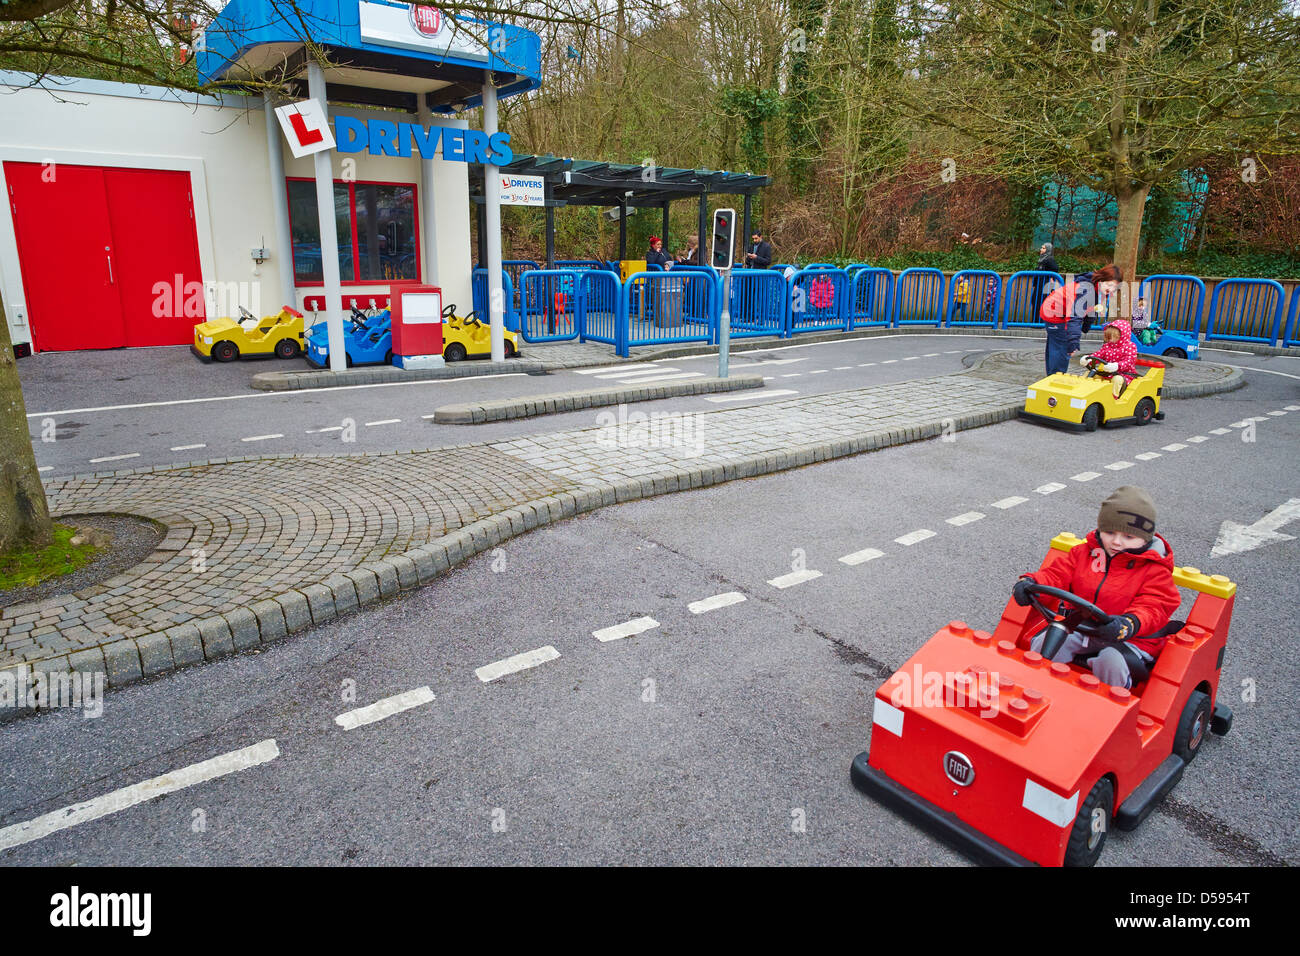 Driving School for under 5 year olds Legoland Windsor UK Stock Photo